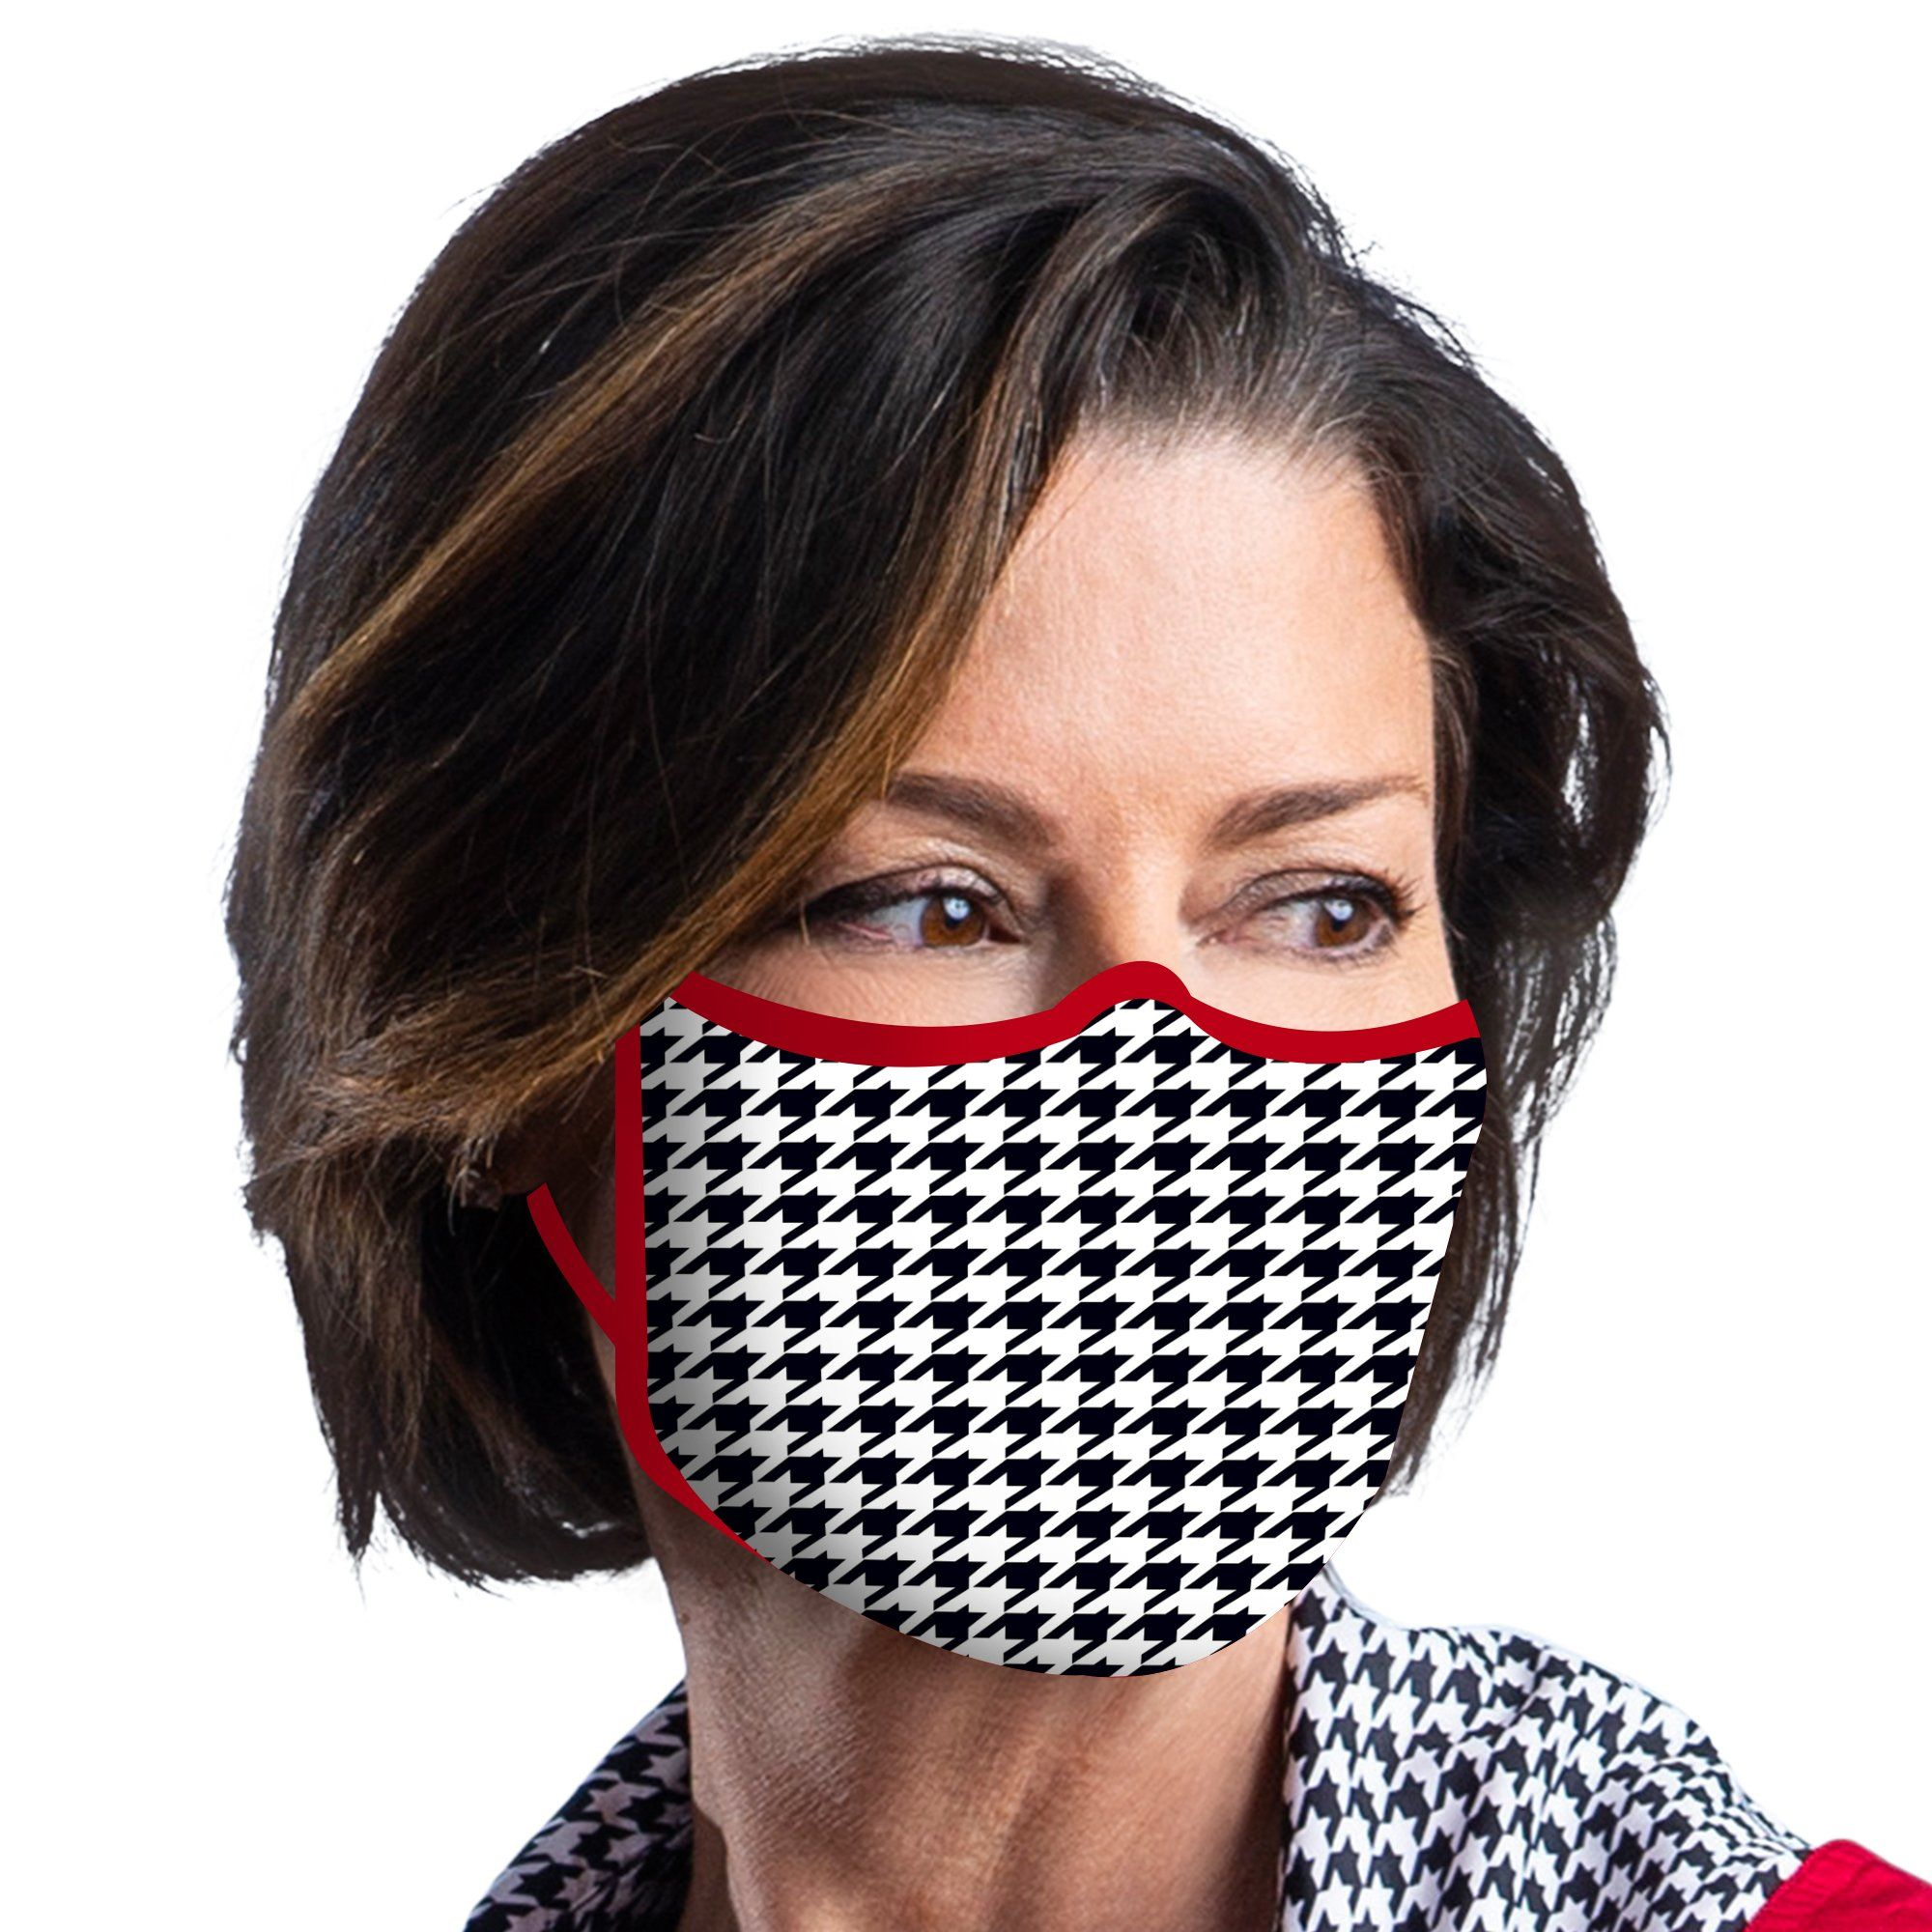 Woman wearing a RainCaper Crimson & Houndstooth Reusable Fabric Face Mask.